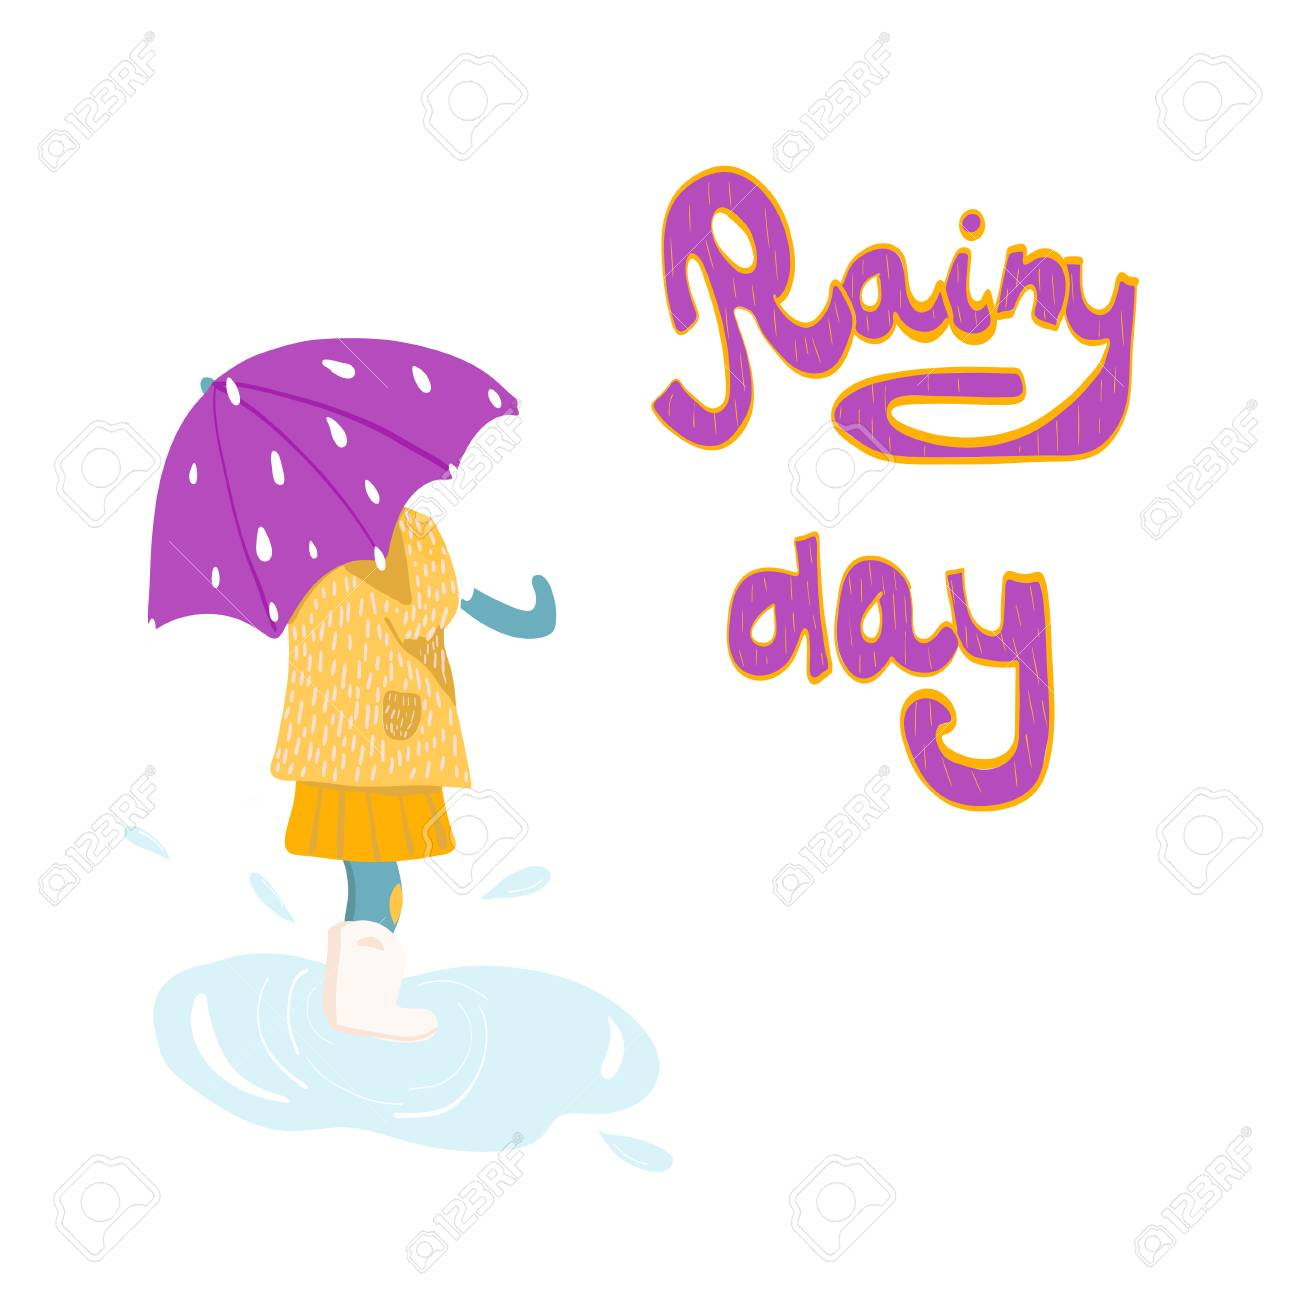 Free Pictures Of Raindrops, Download Free Clip Art, Free Clip Art on Clipart  Library